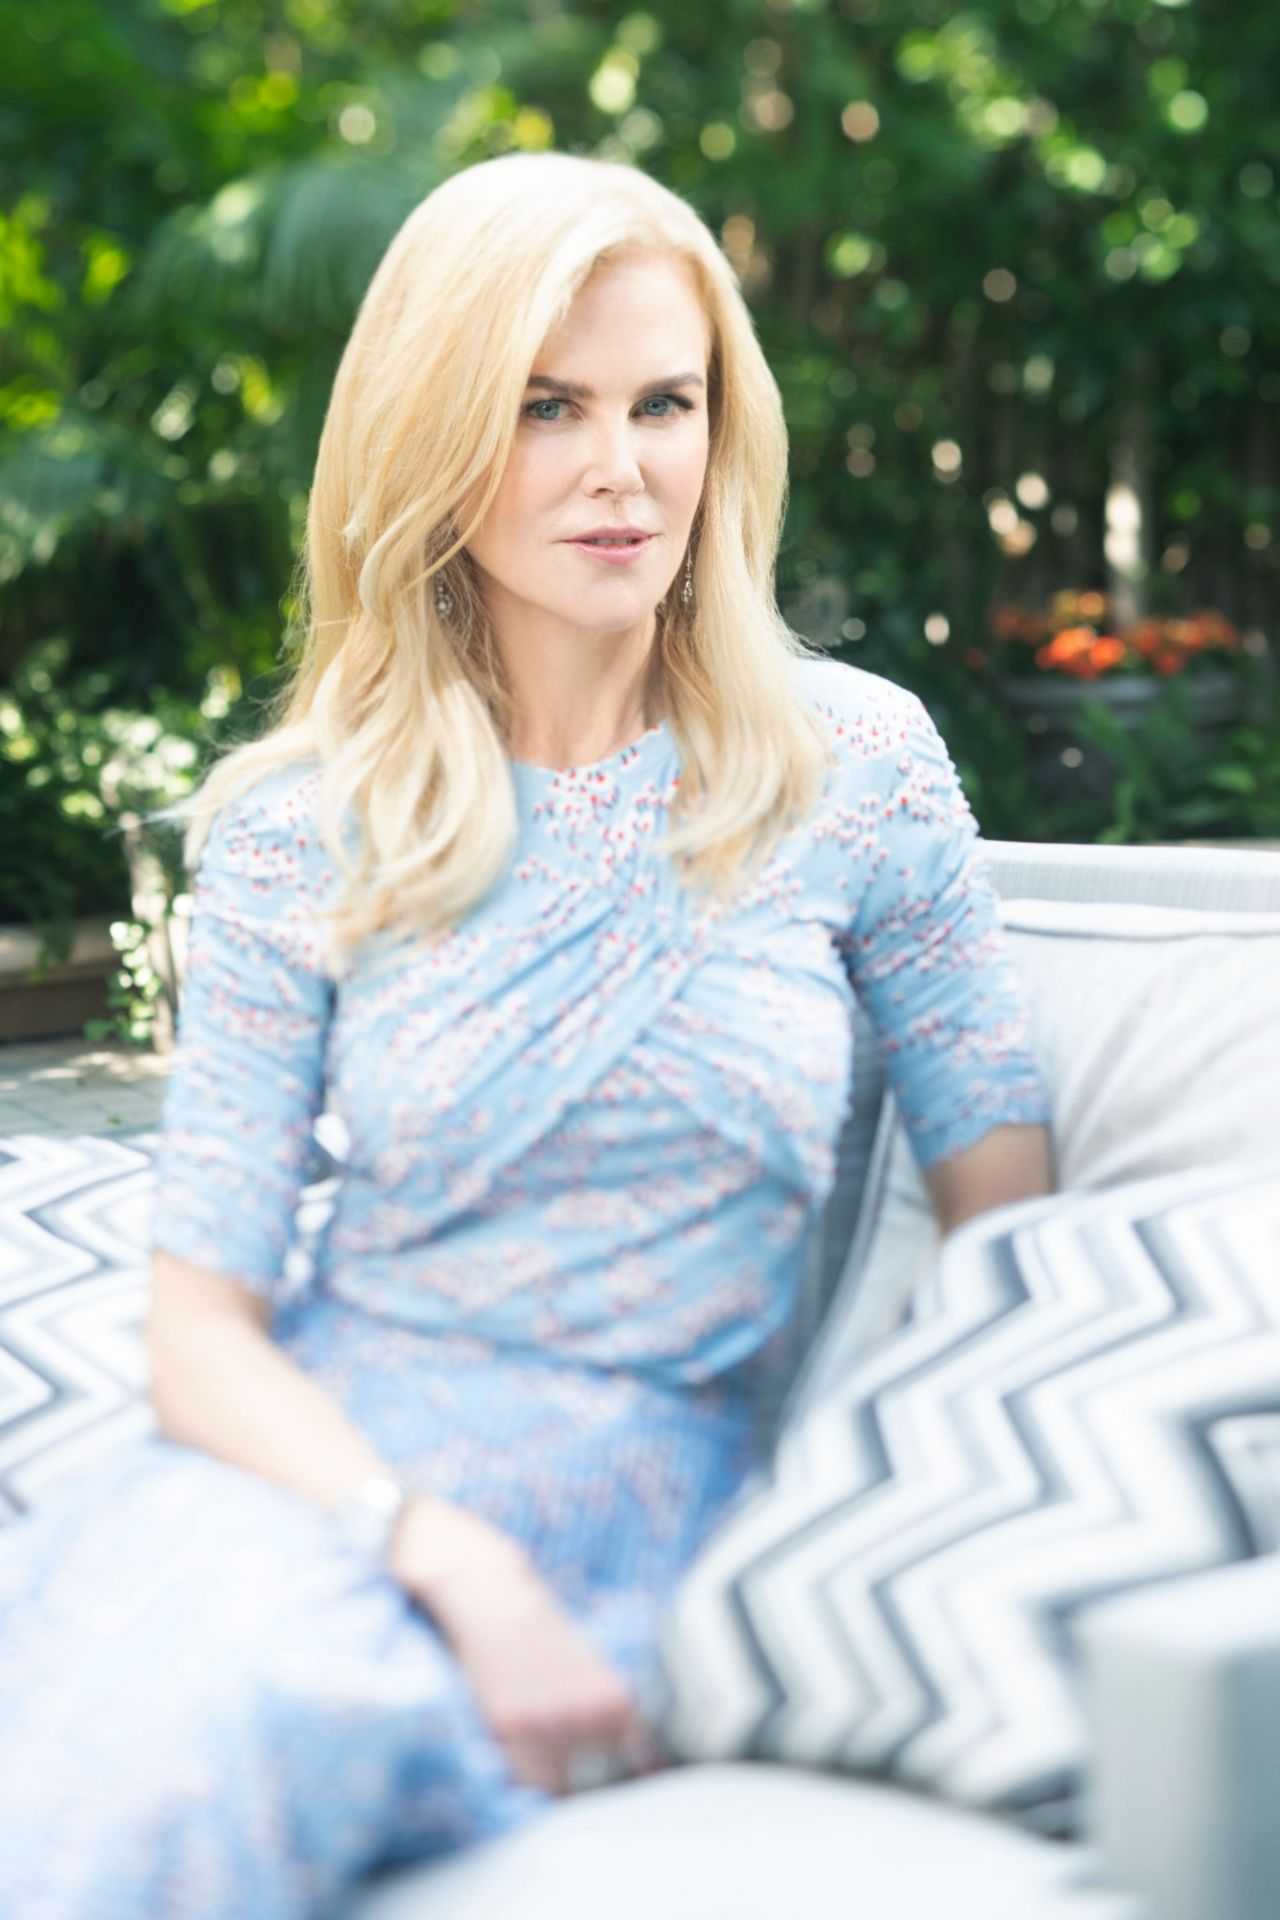 https://celebmafia.com/wp-content/uploads/2018/11/nicole-kidman-photoshoot-for-usa-today-november-2018-1.jpg